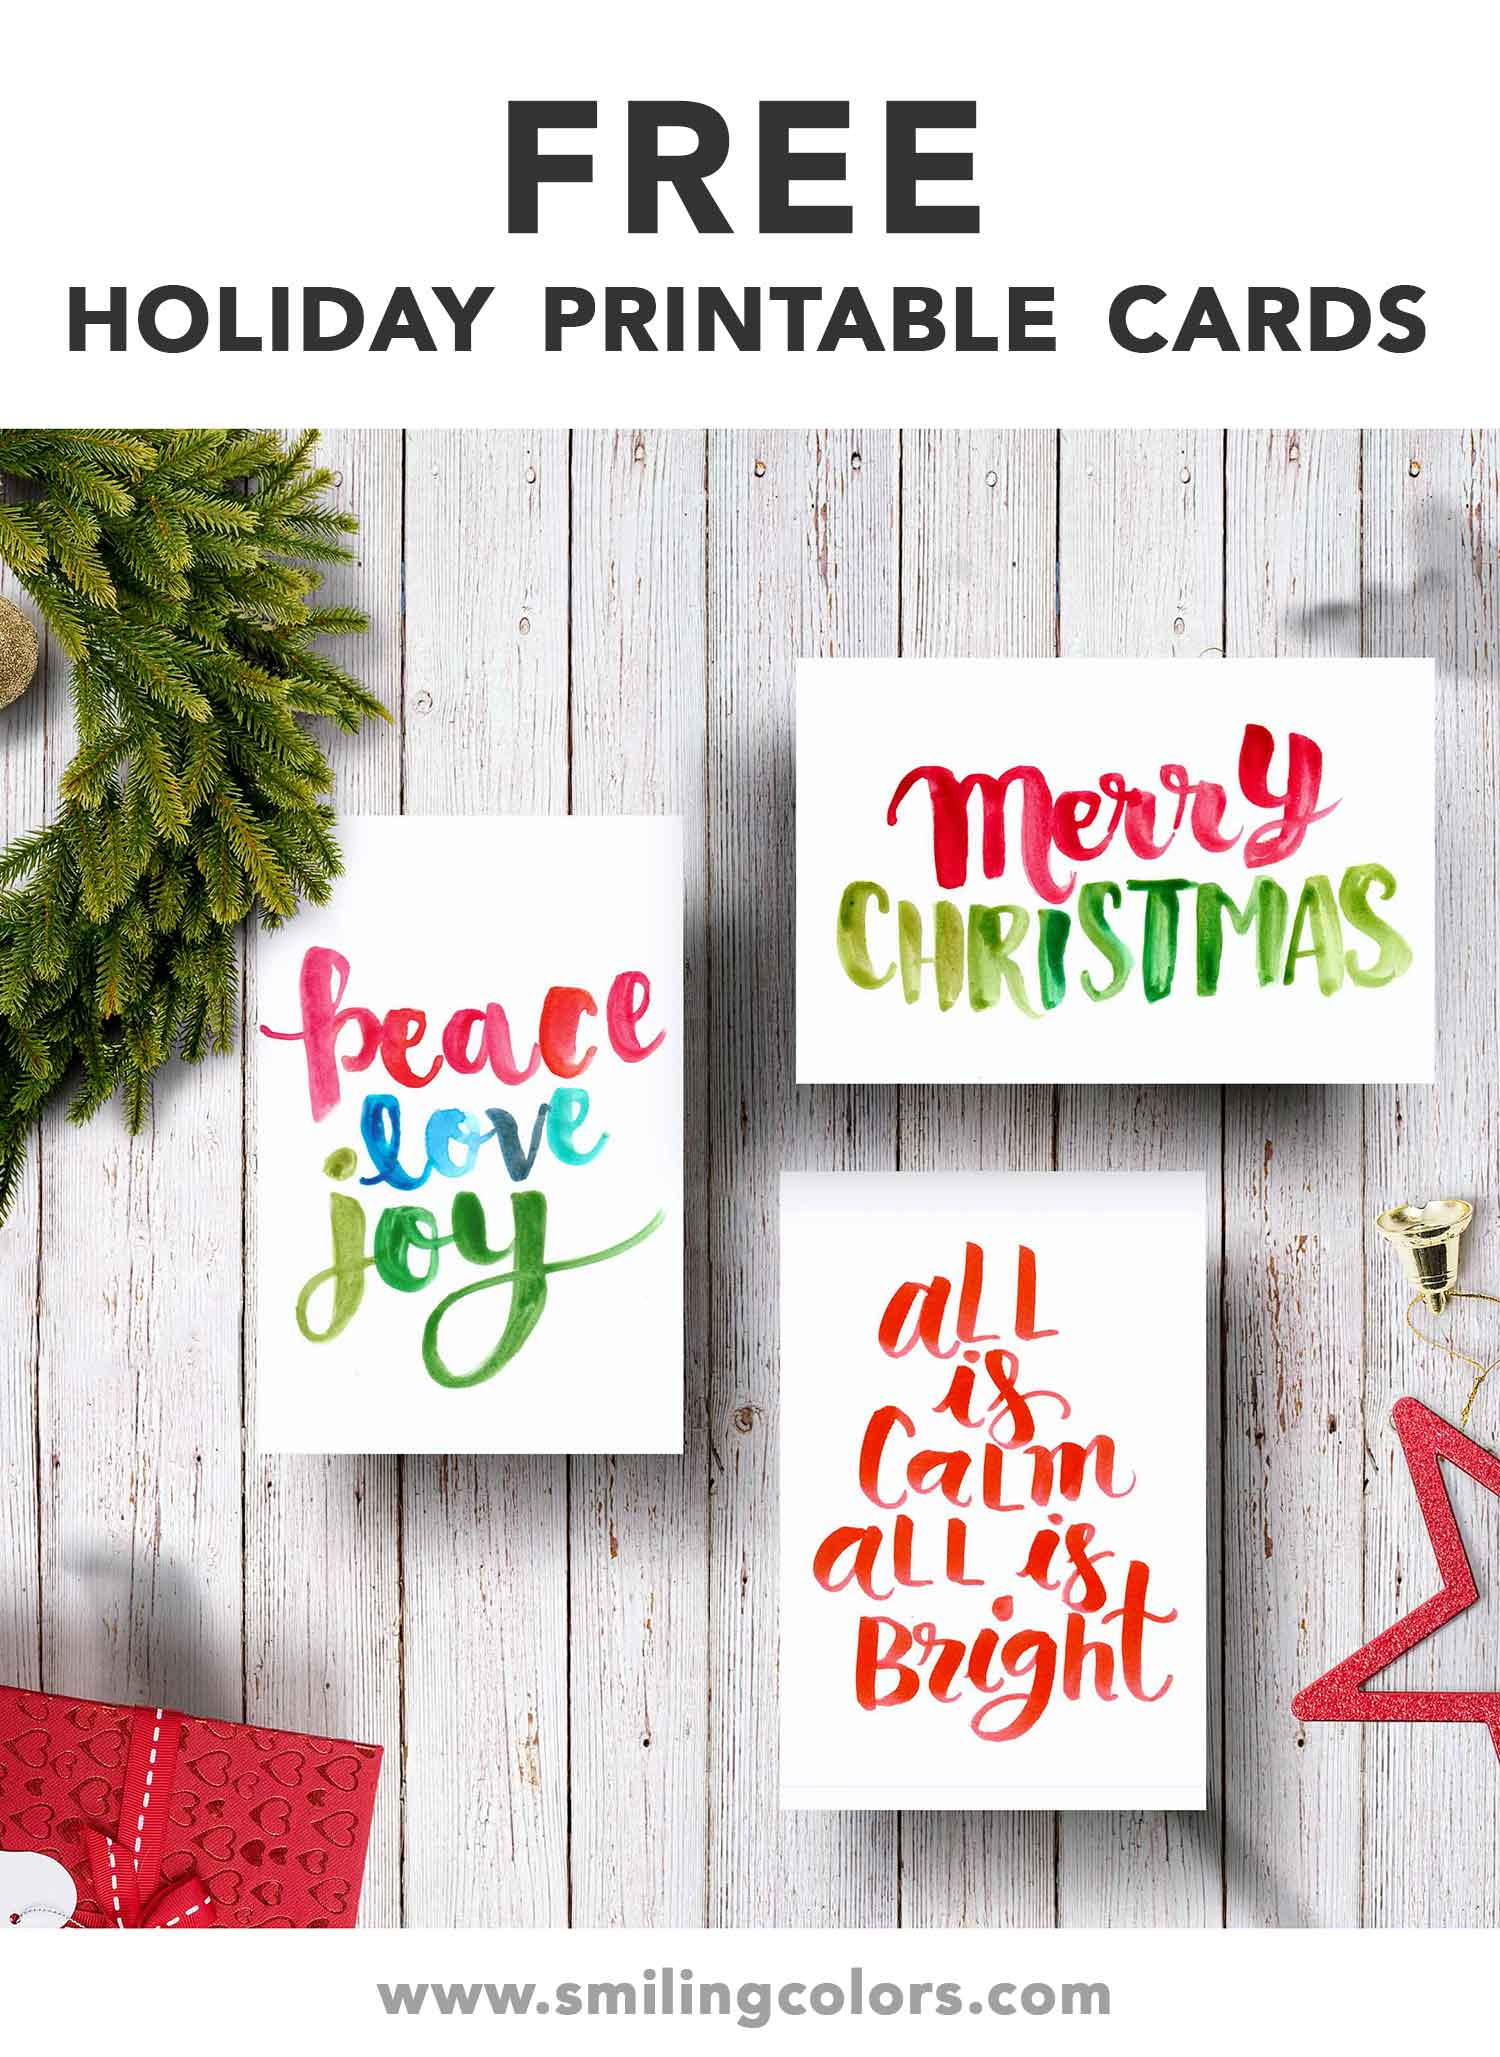 photograph about Free Printable Photo Christmas Cards named Free of charge printable family vacation playing cards that yourself can obtain and print Previously